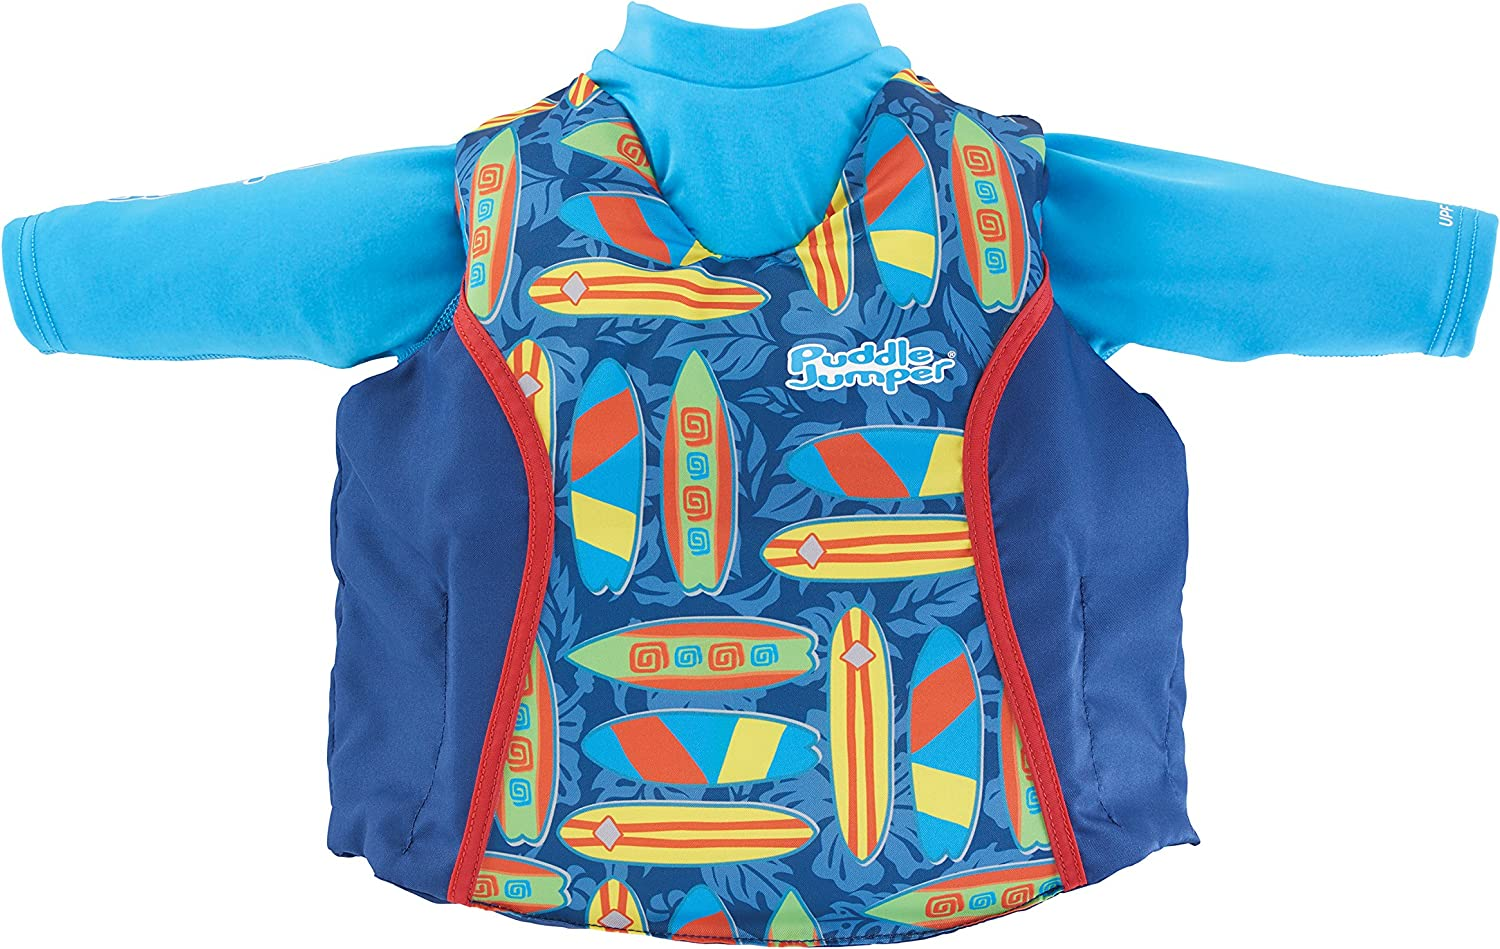 Puddle Jumper Kids 2-in-1 Life Jacket and Rash Guard, Surfboards